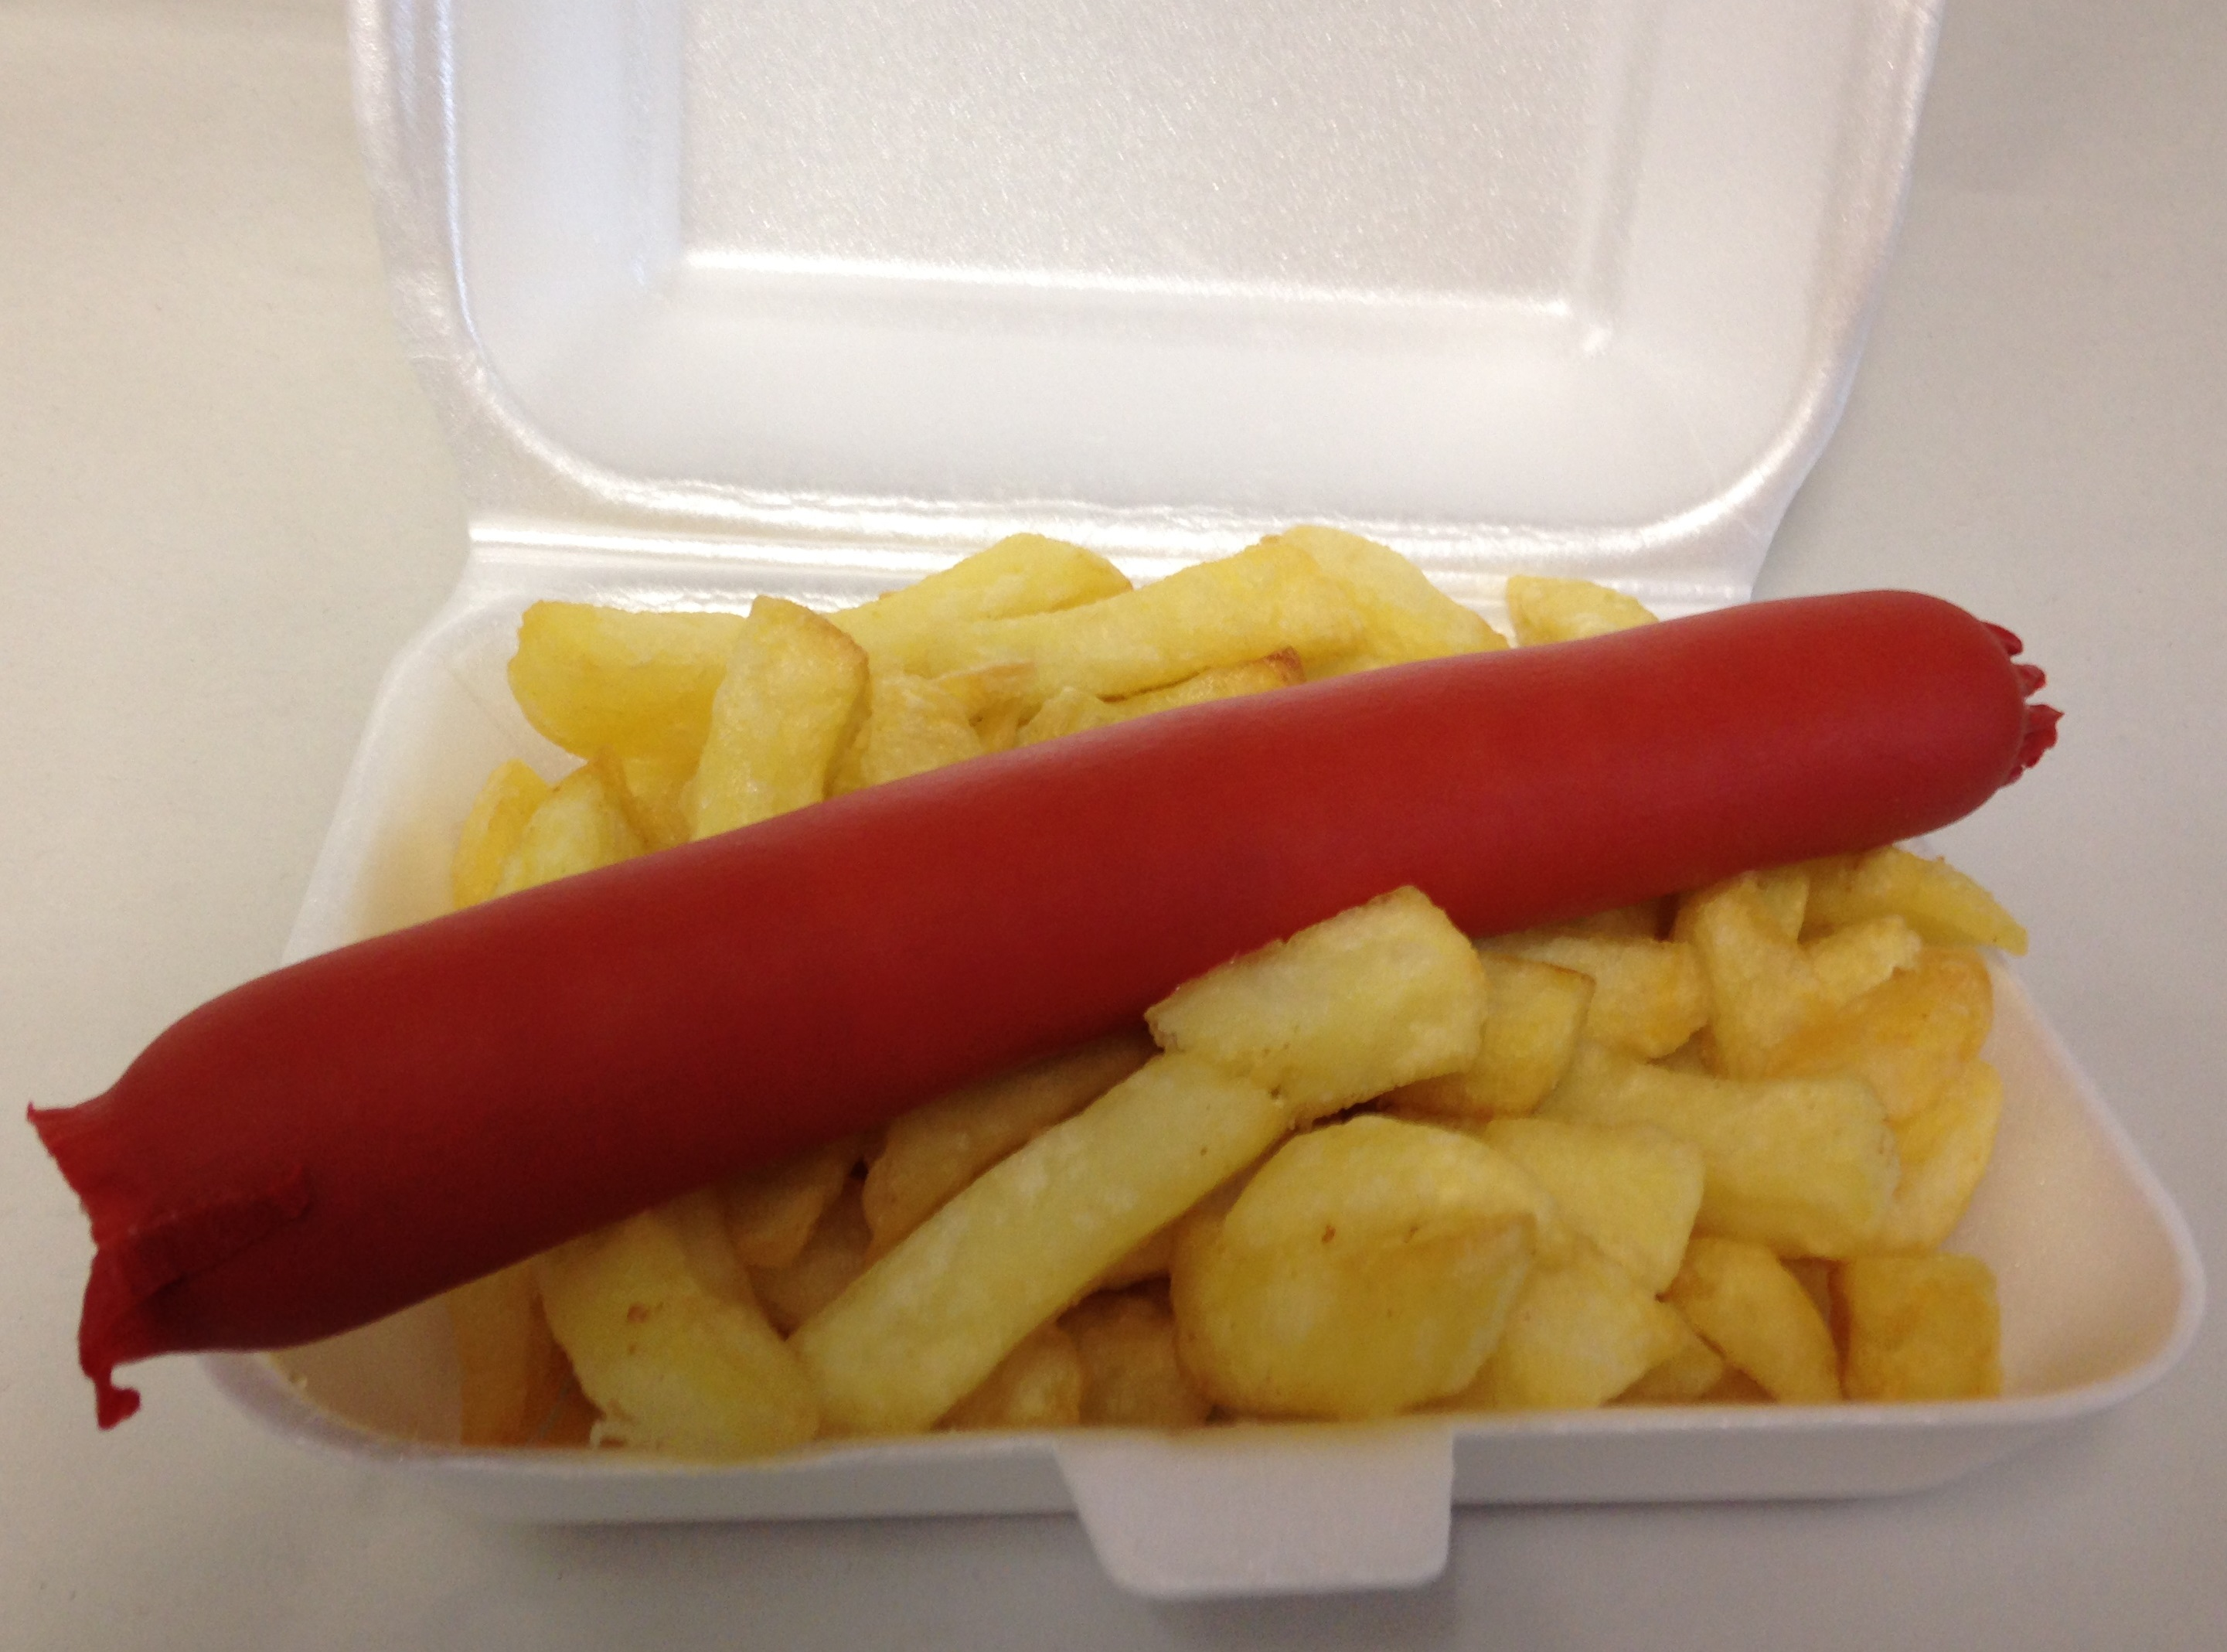 saveloy.jpg